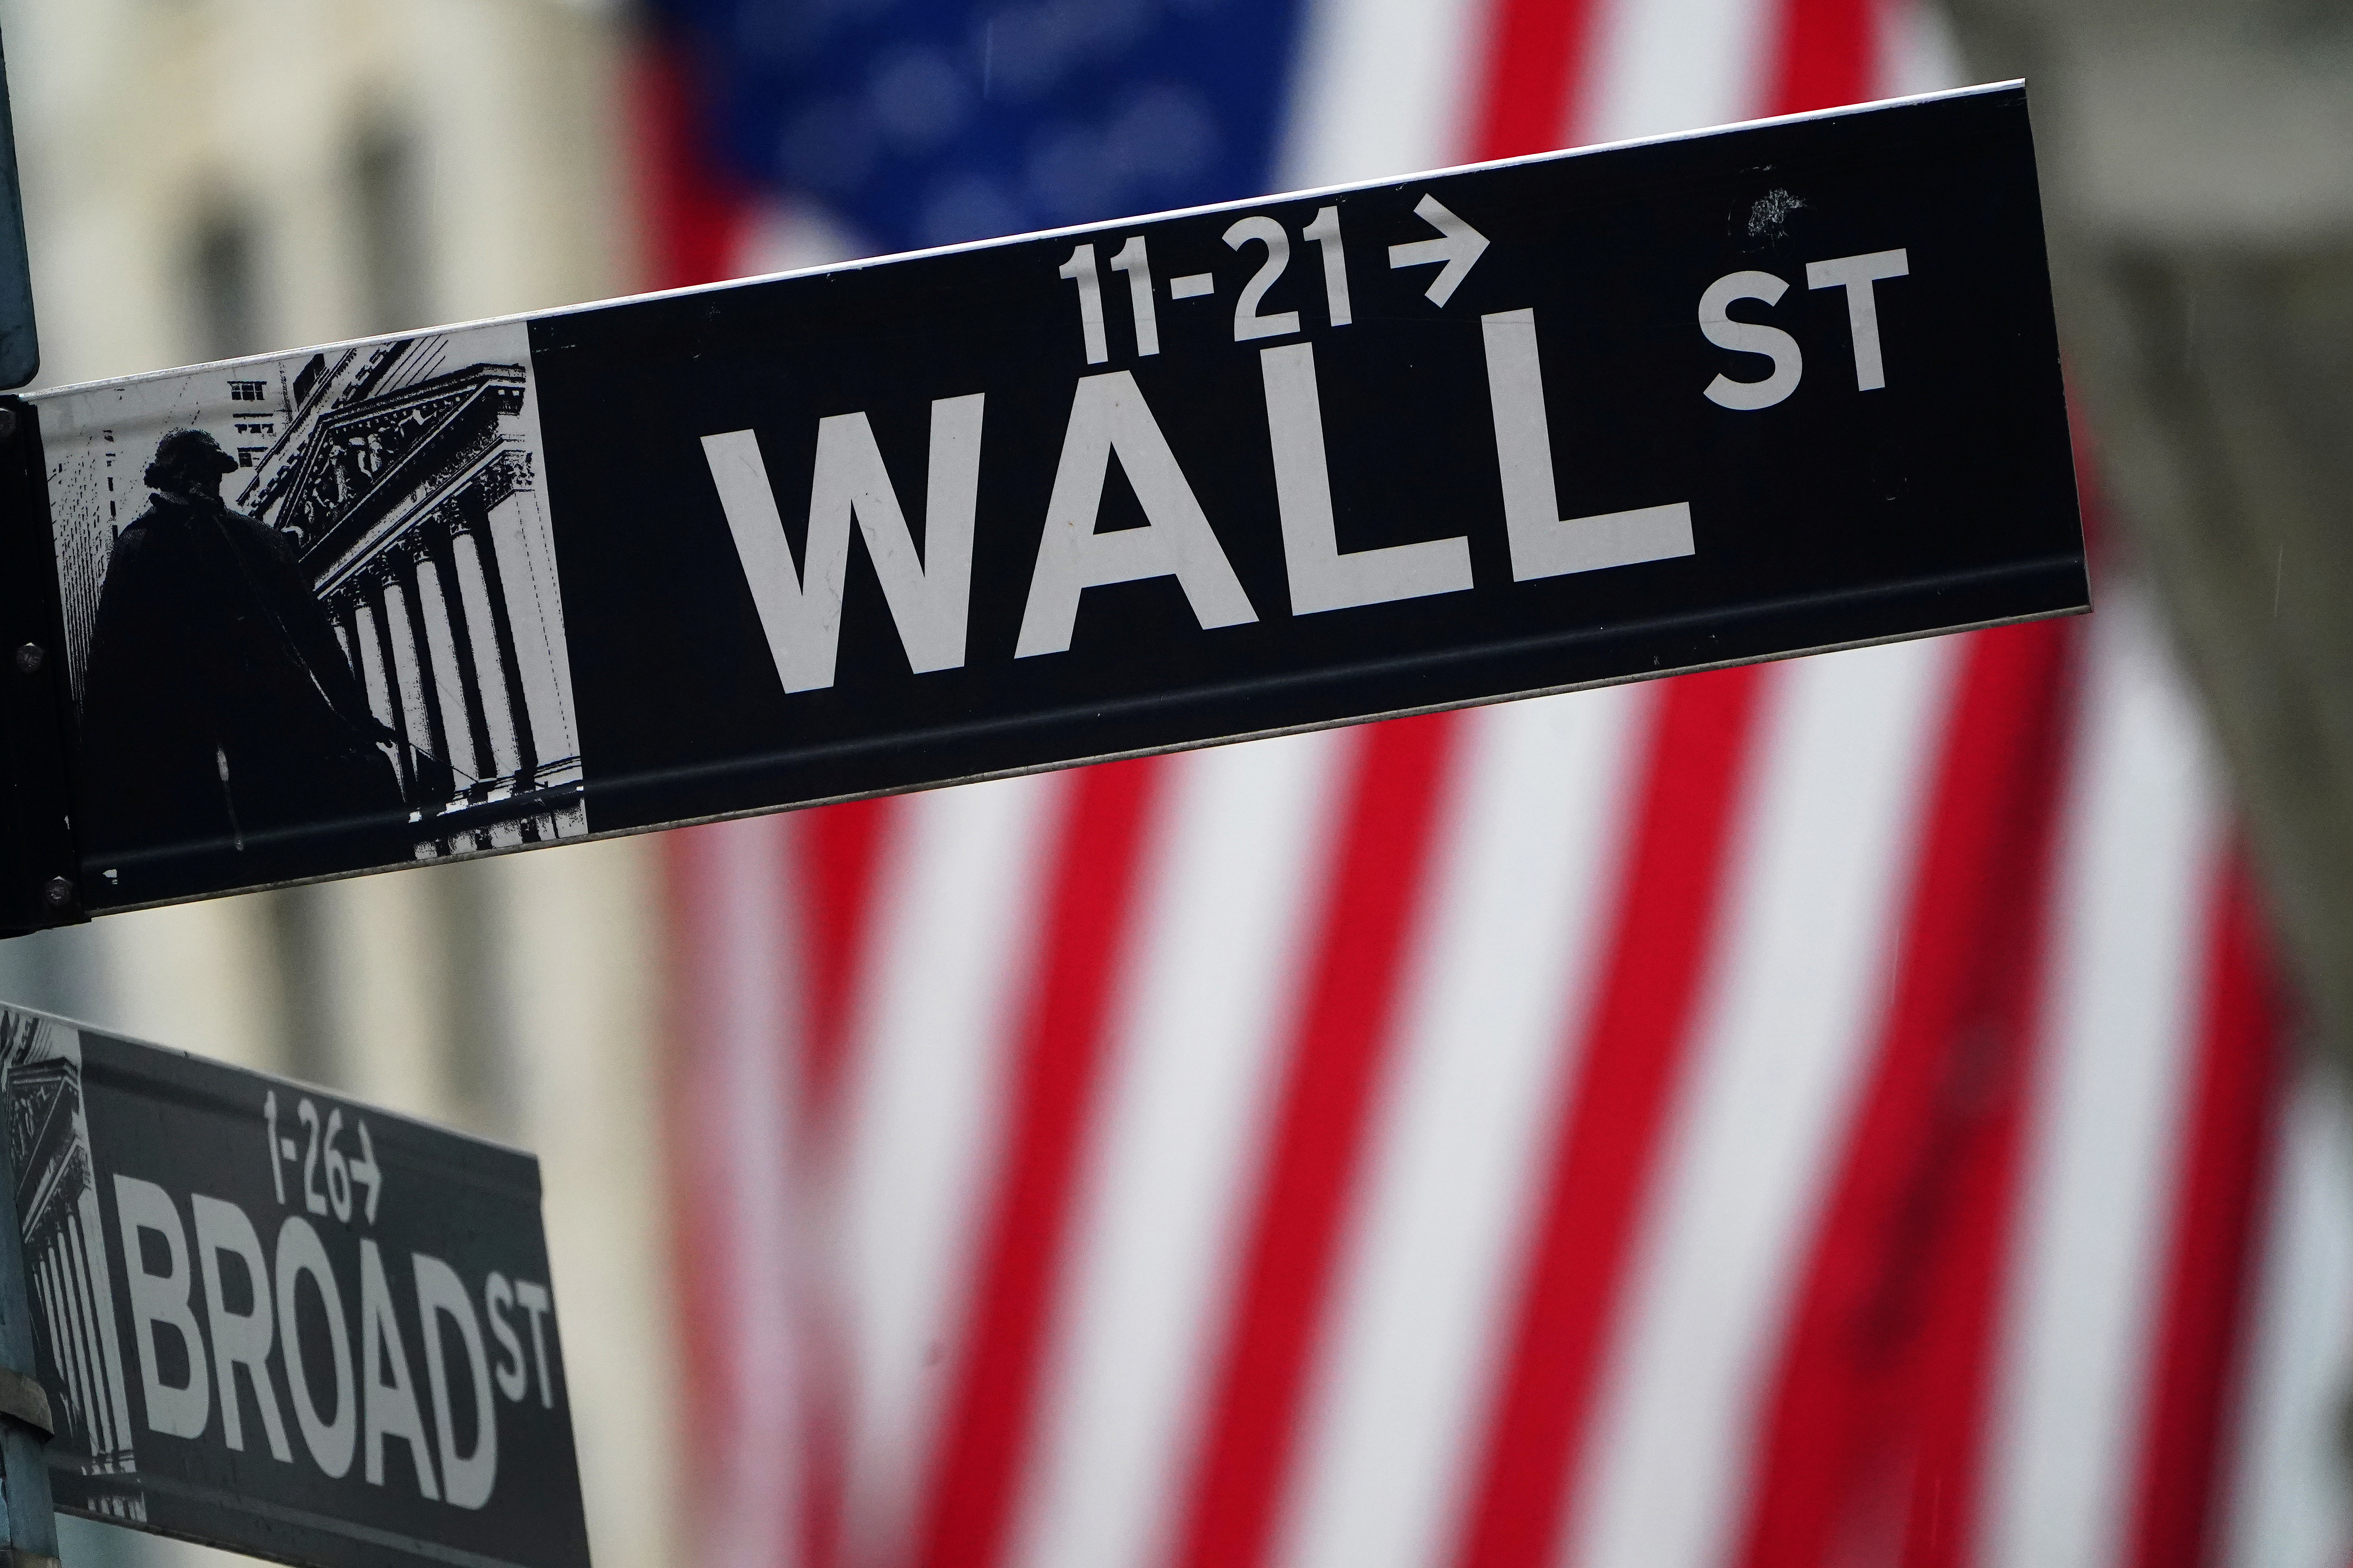 A Wall Street sign is pictured outside the New York Stock Exchange in the Manhattan borough of New York City, New York, U.S., October 2, 2020. REUTERS/Carlo Allegri/File Photo